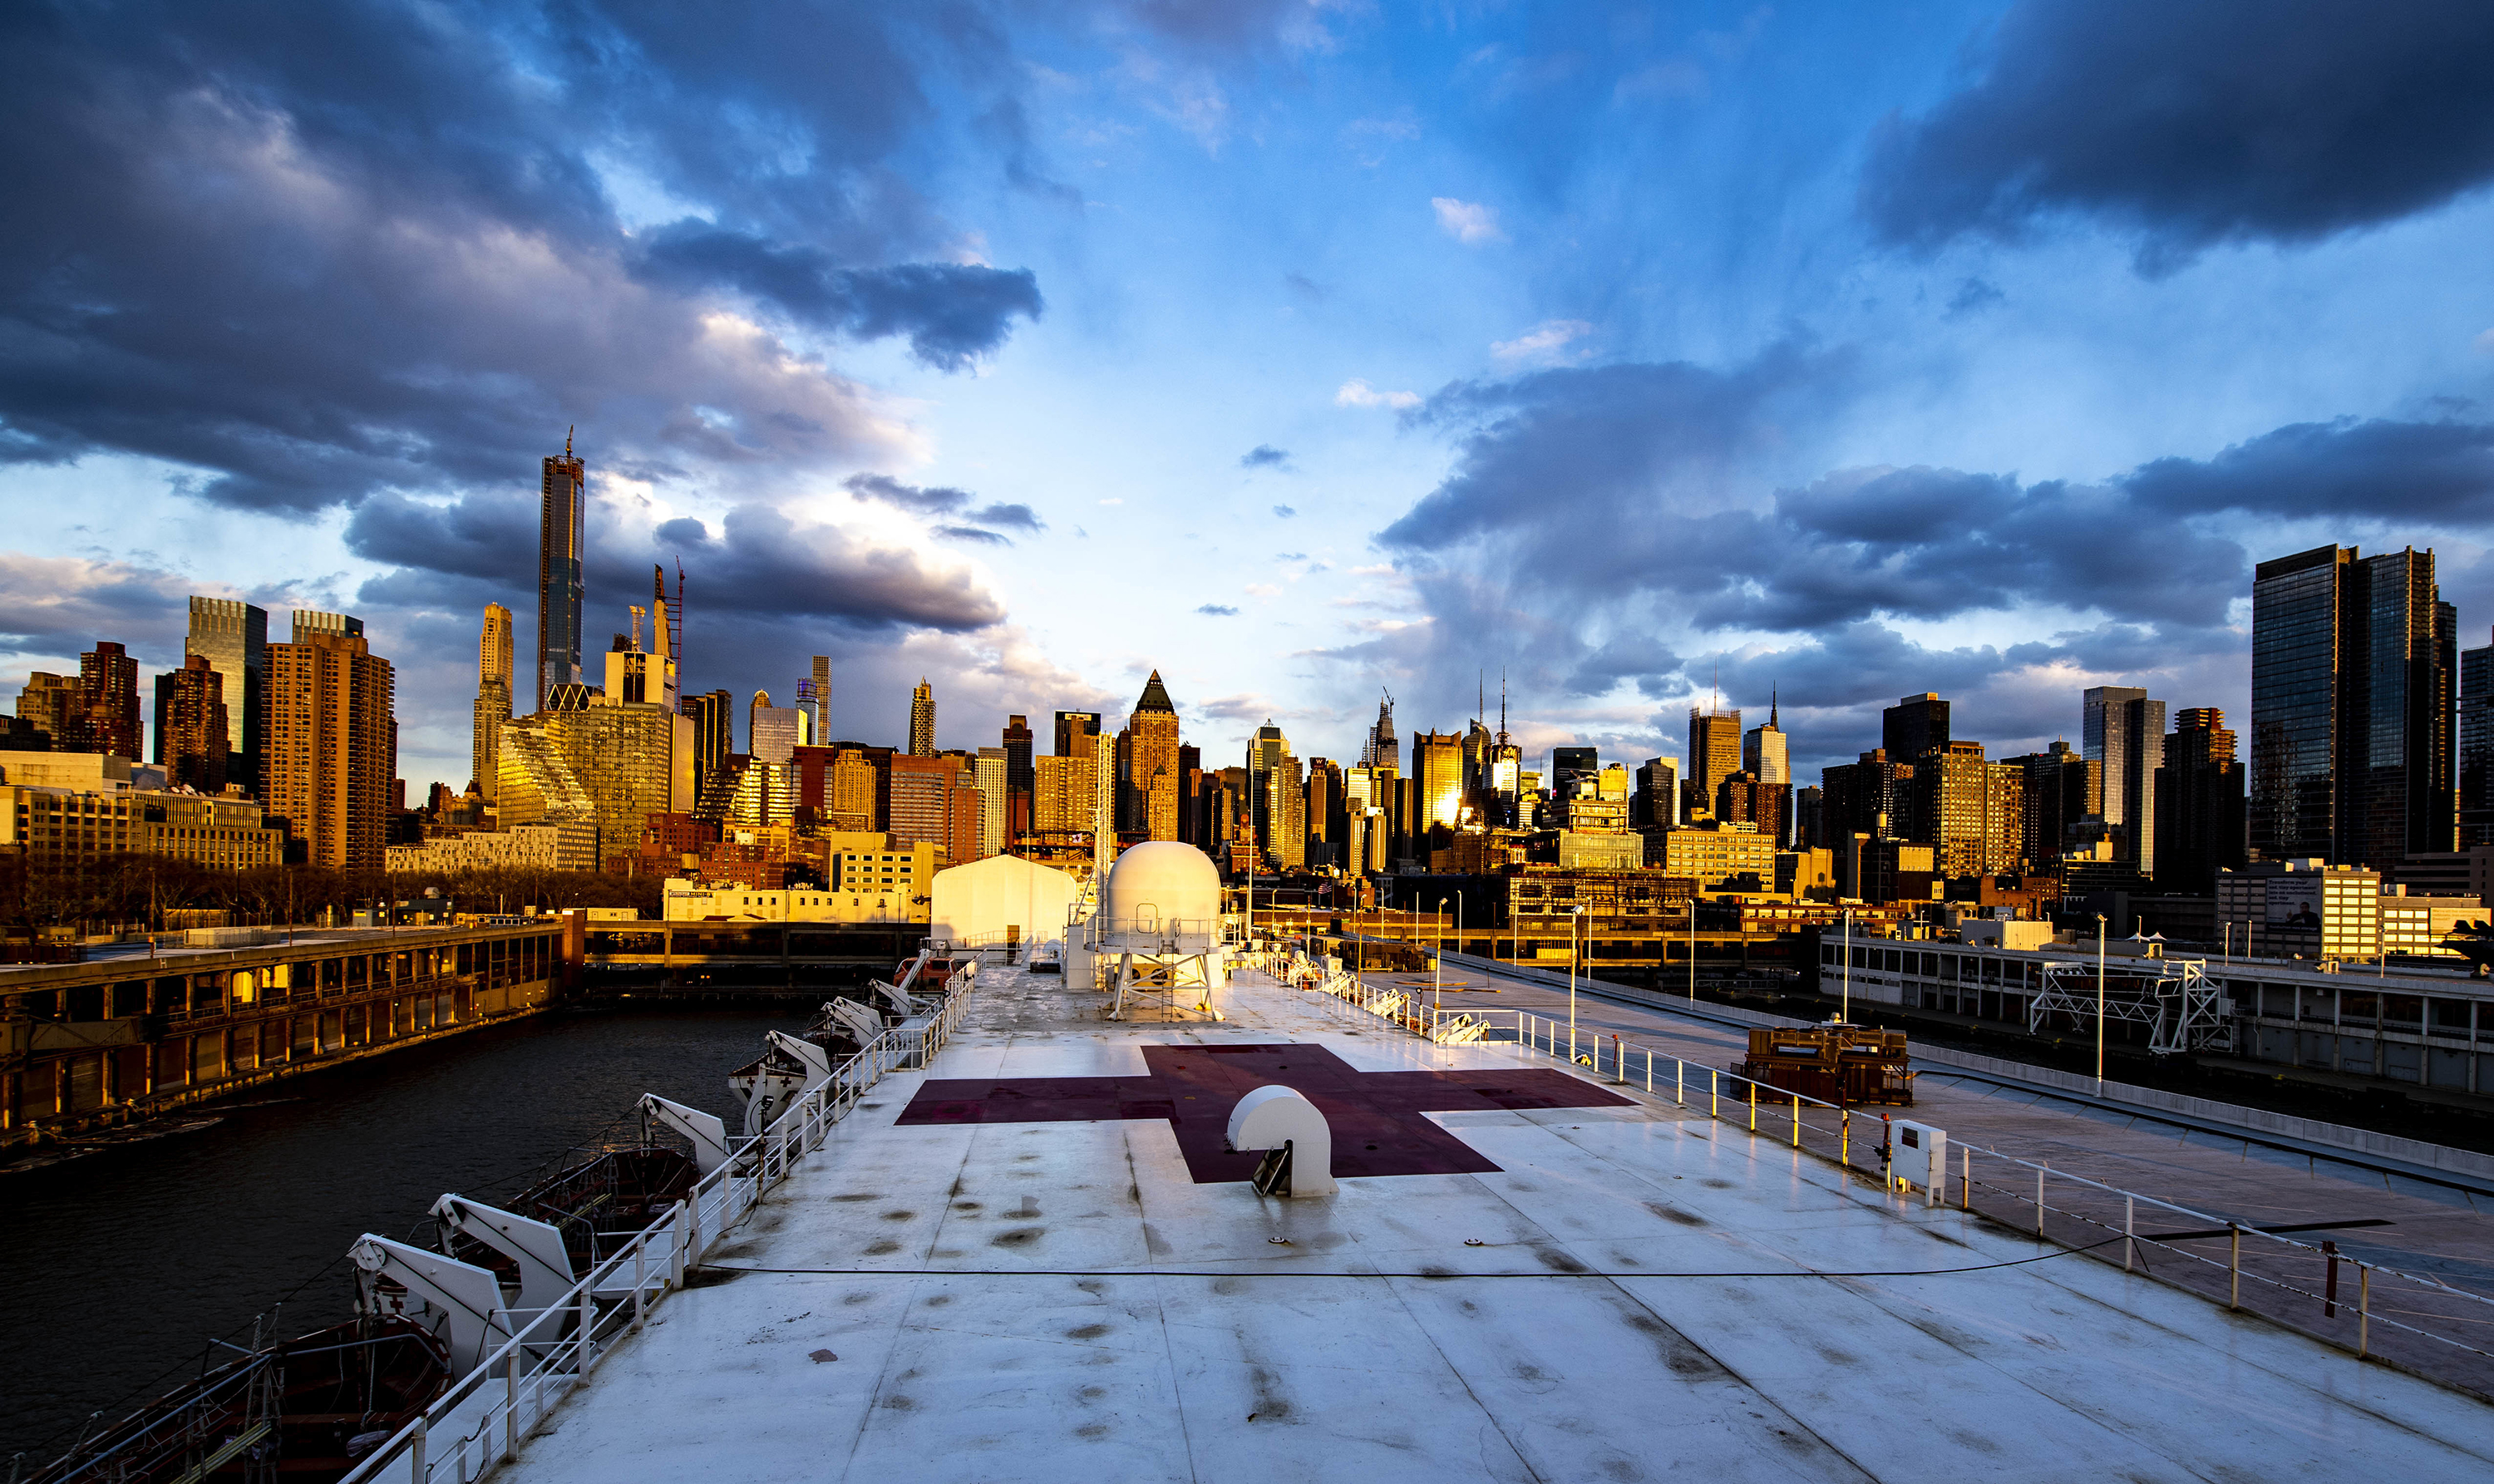 The Military Sealift Command hospital ship USNS Comfort (T-AH 20) provides medical relief to New York City on April 16, 2020. (Mass Communication Specialist 1st Class Scott Bigley/Navy)